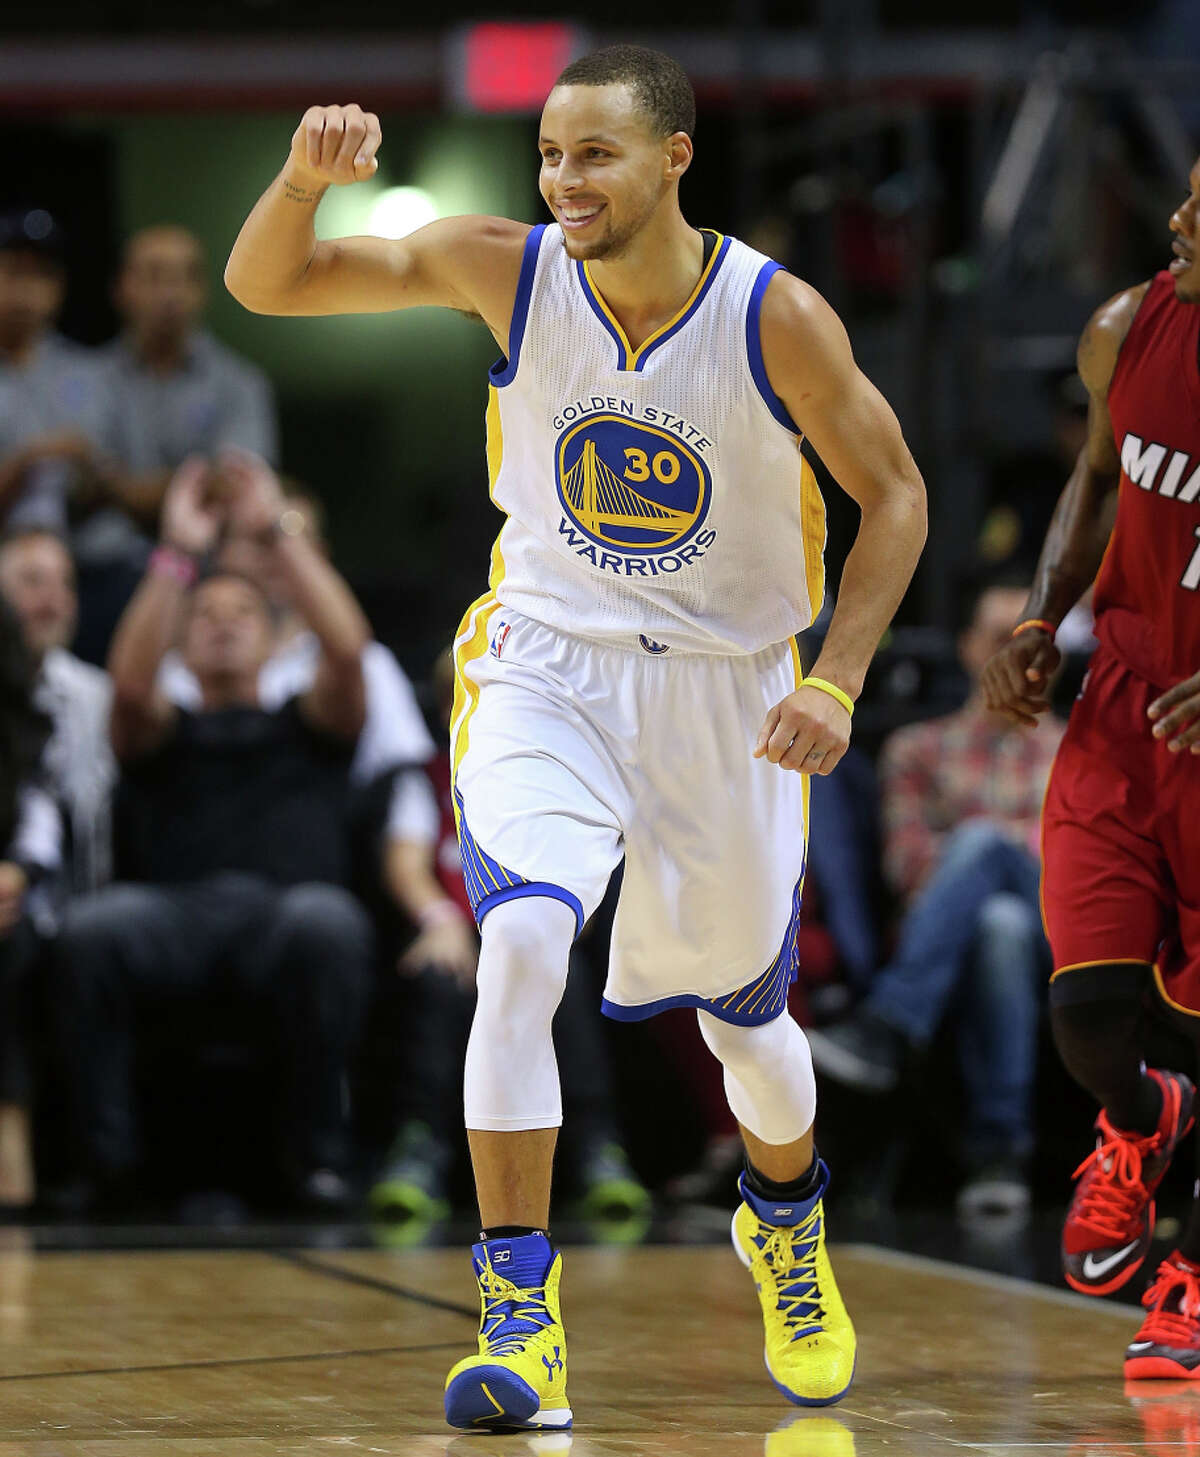 Stephen Curry's 40-point performance sparked the Warriors' turnaround from a 16-point deficit to a 17-point victory.